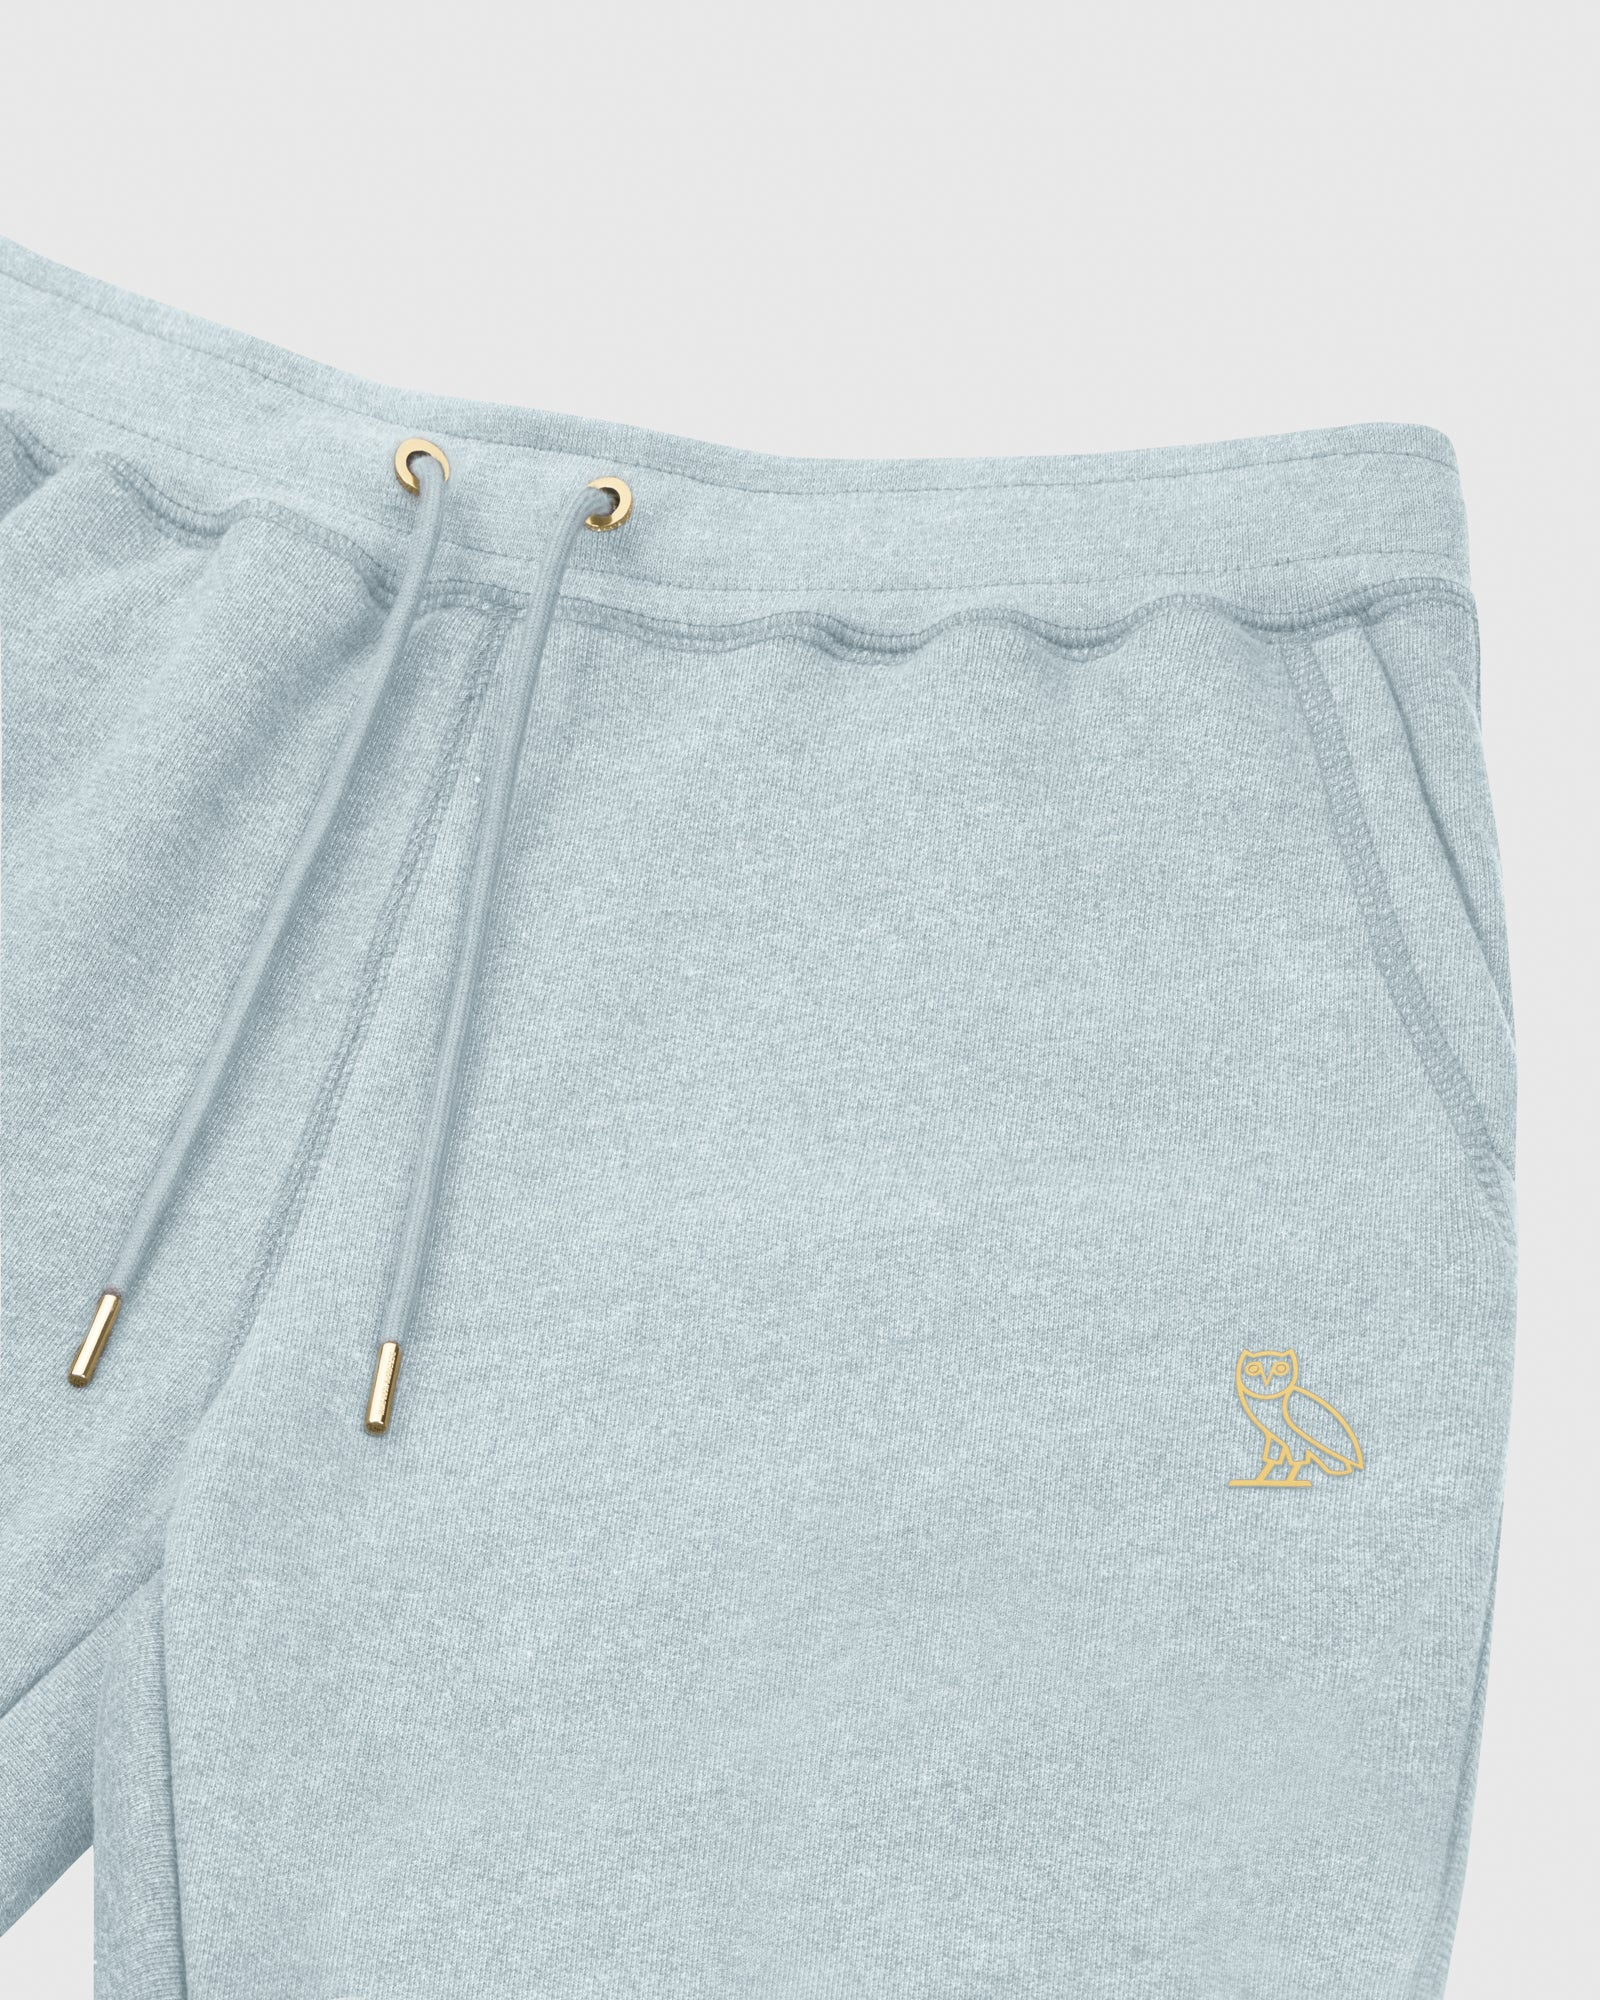 OVO FRENCH TERRY SWEATPANT - HEATHER LIGHT BLUE IMAGE #3